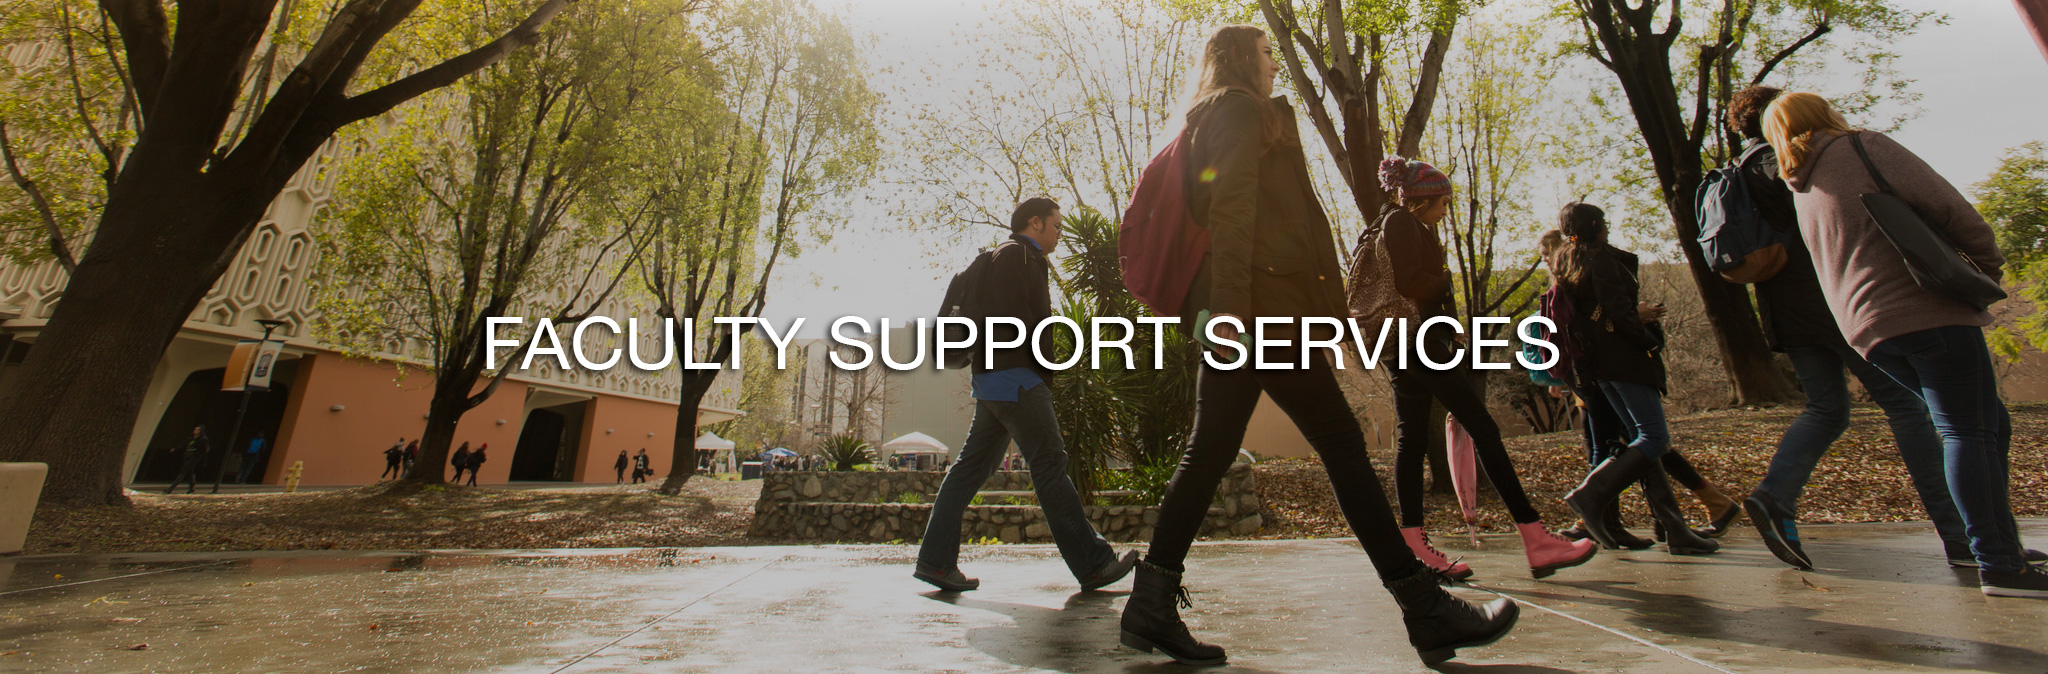 Faculty Support Services